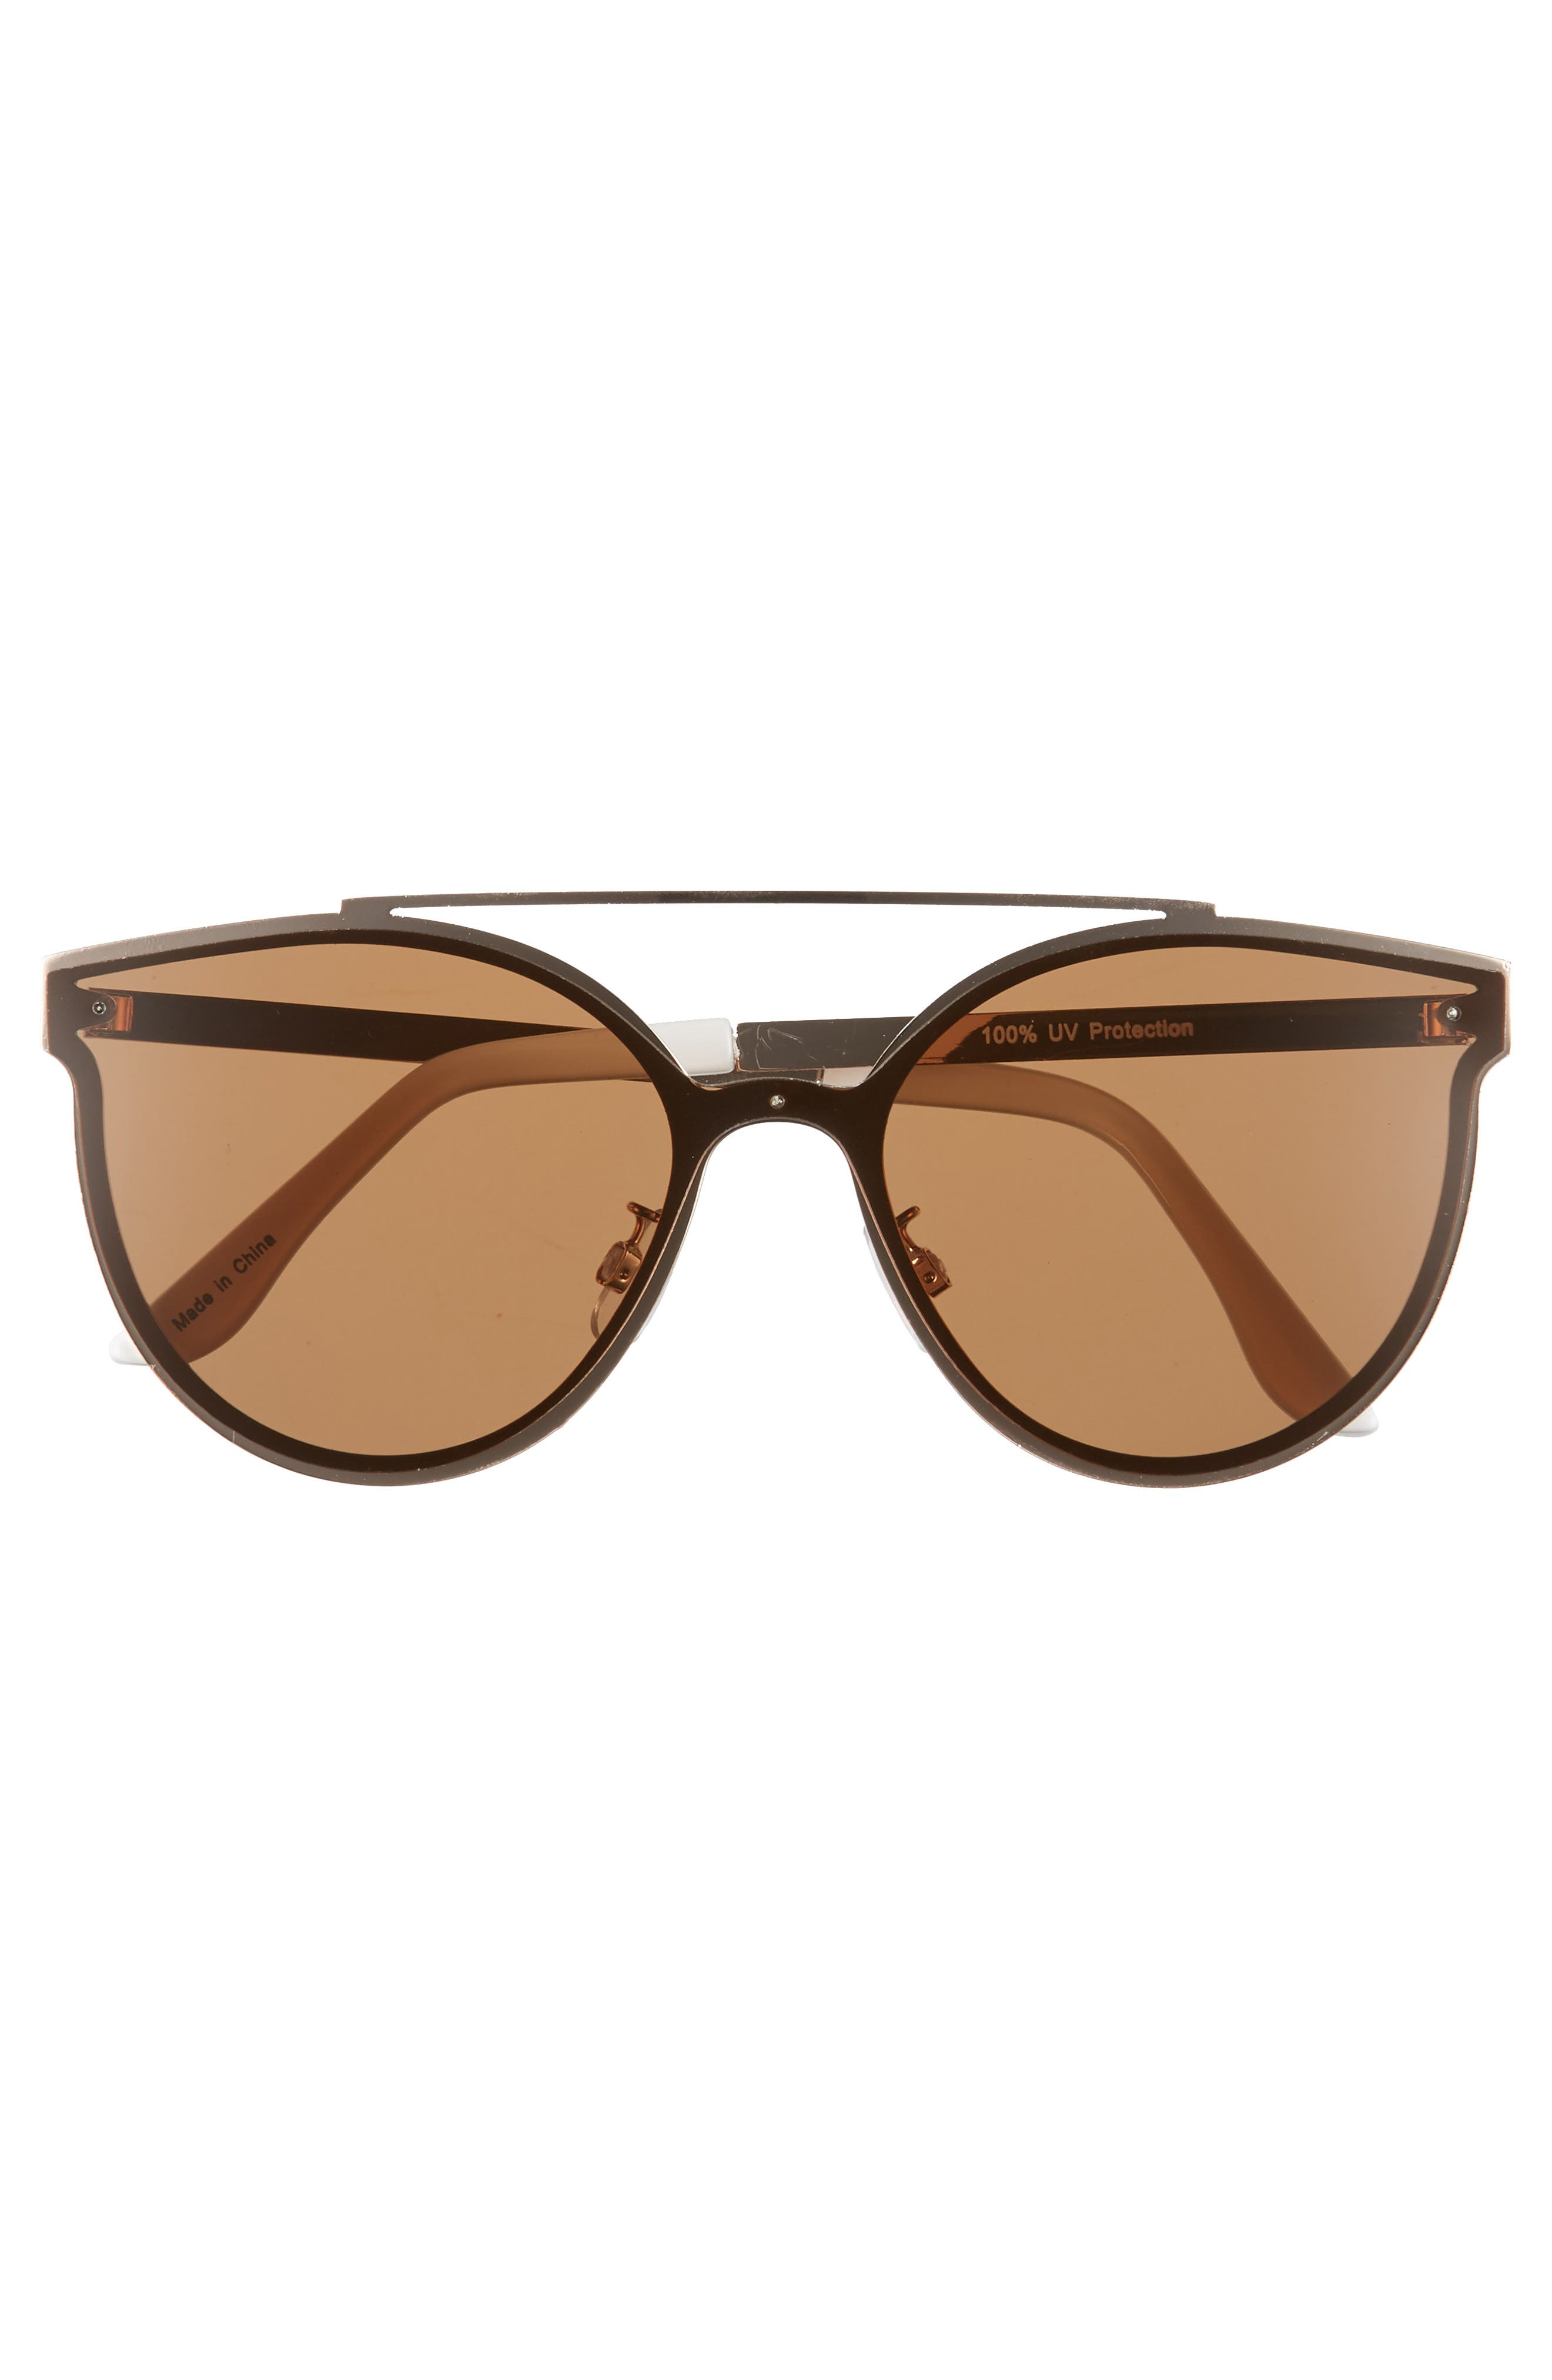 58mm Brow Bar Sunglasses,                             Alternate thumbnail 3, color,                             GOLD